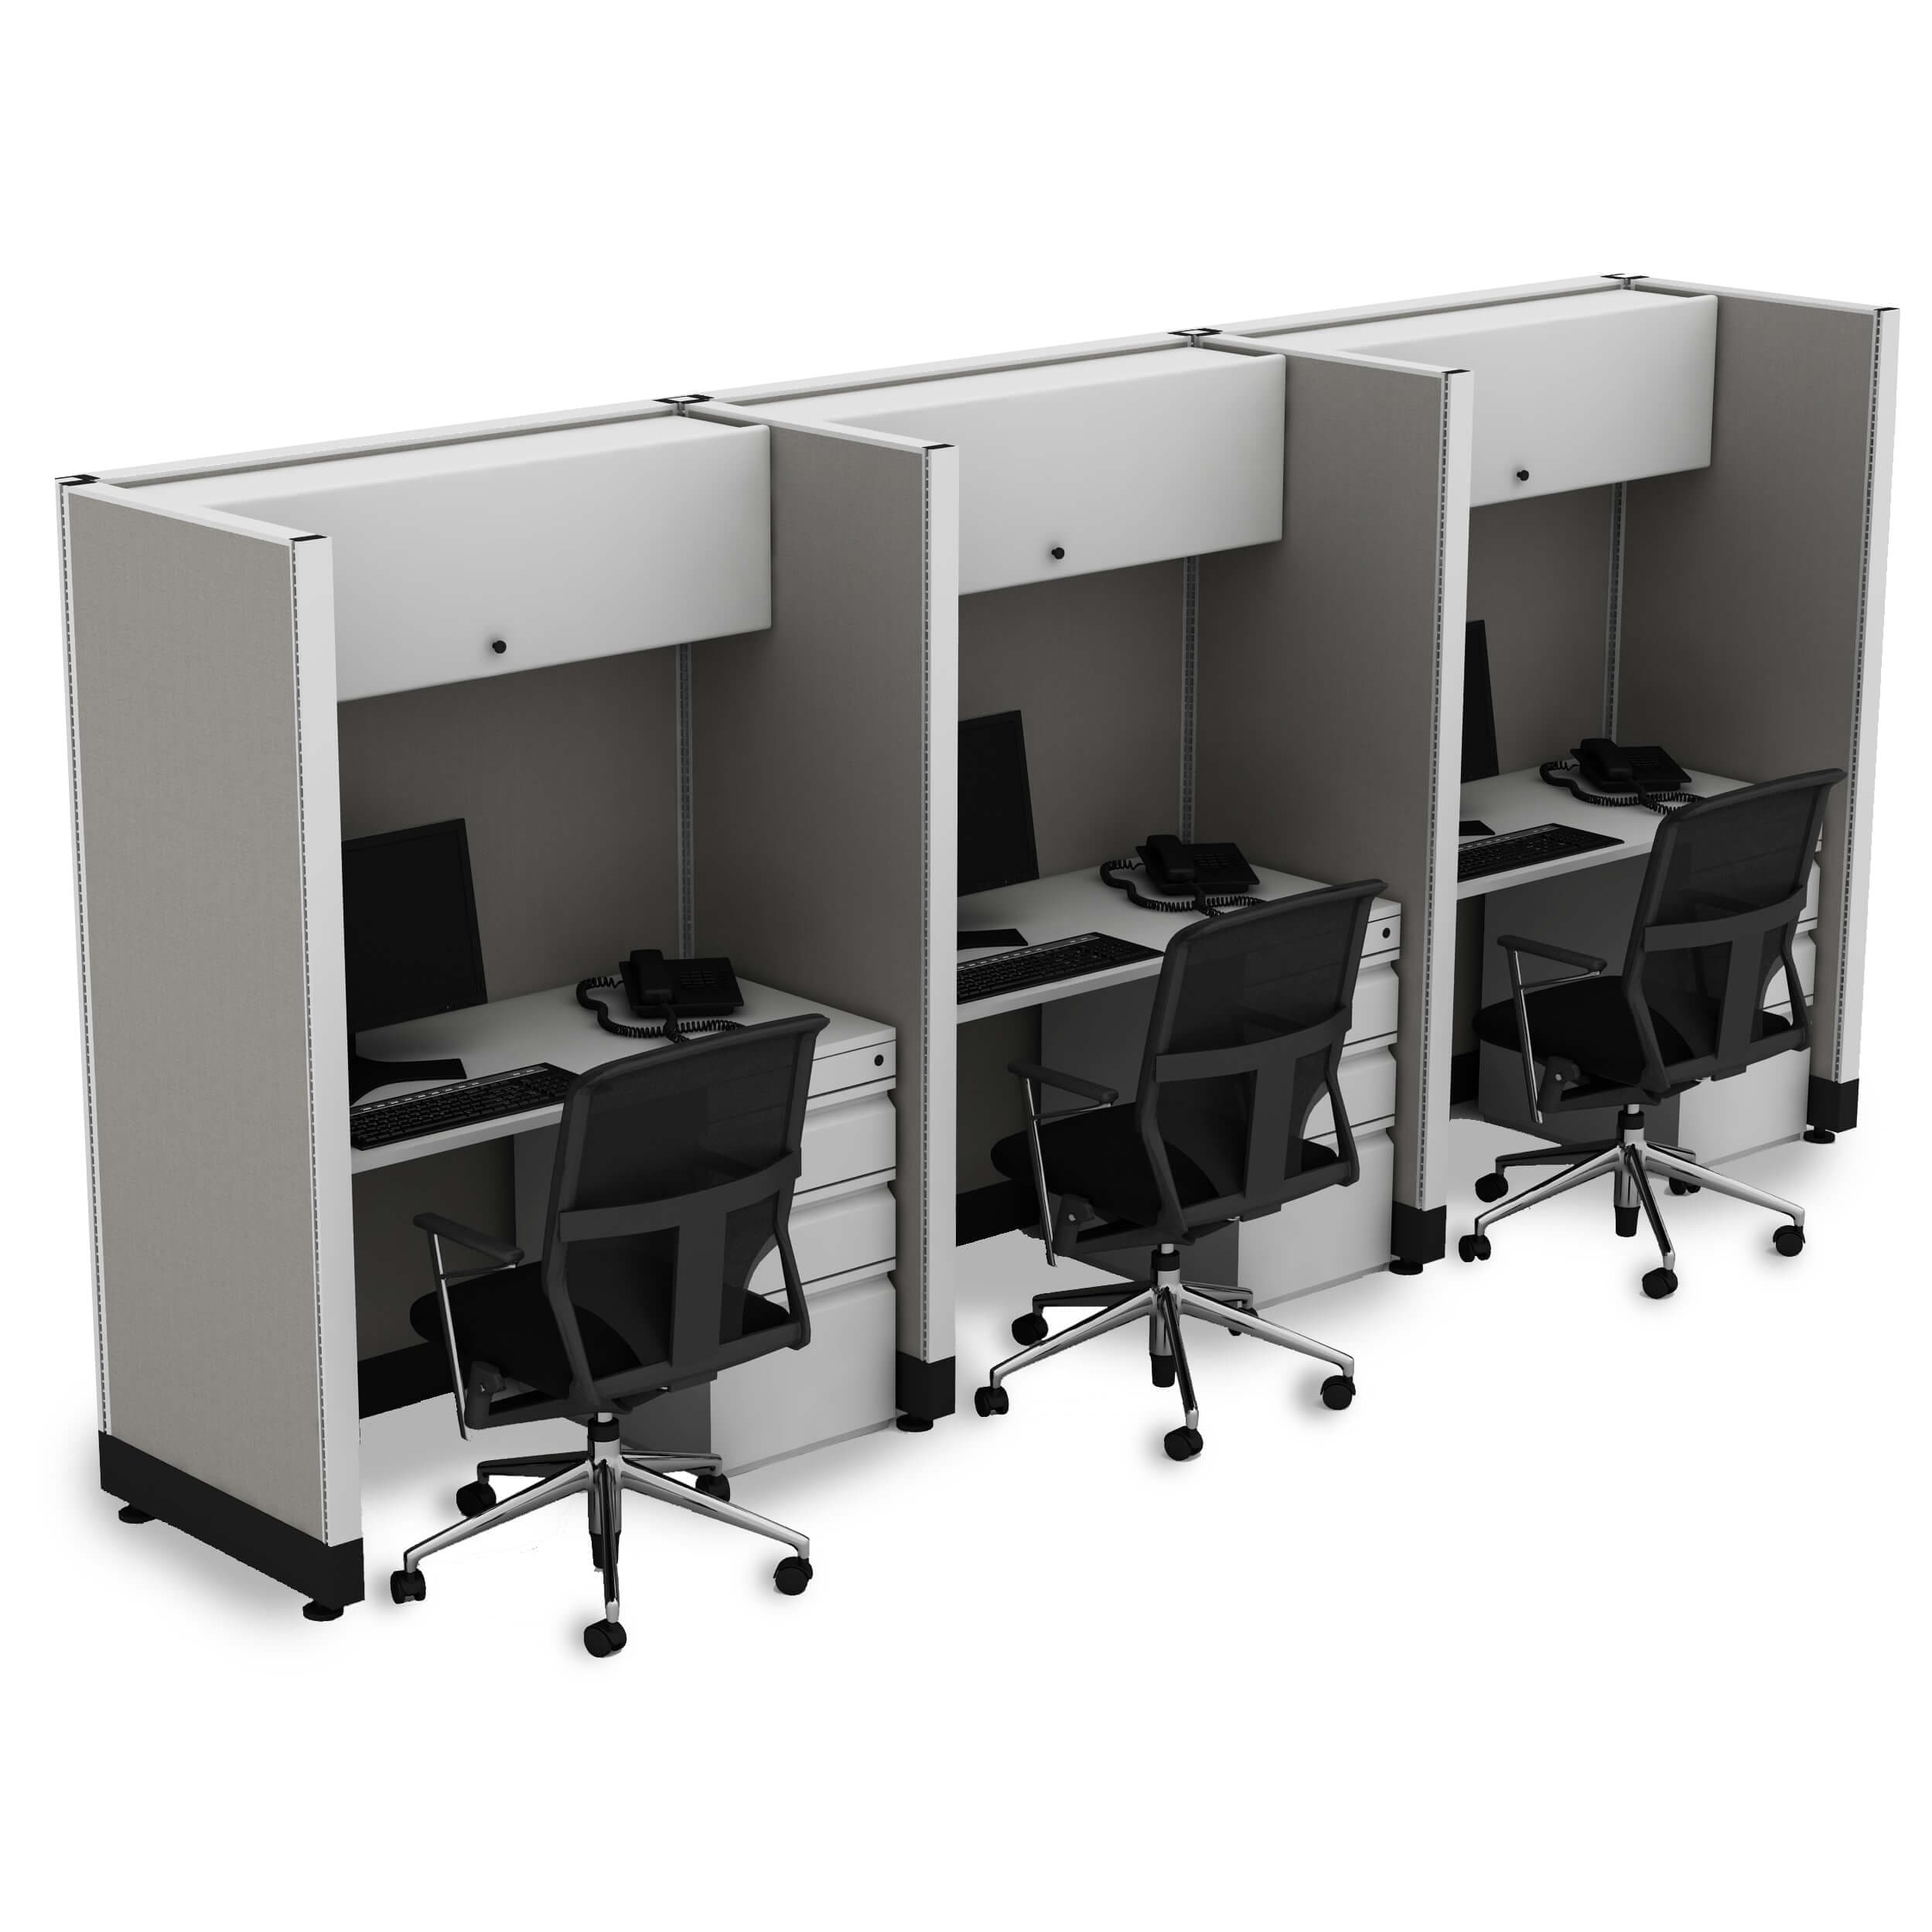 Tall Cubicles 67H 3pack Inline Unpowered (2x4 - Espresso Desk Silver Paint - Assembly Required)